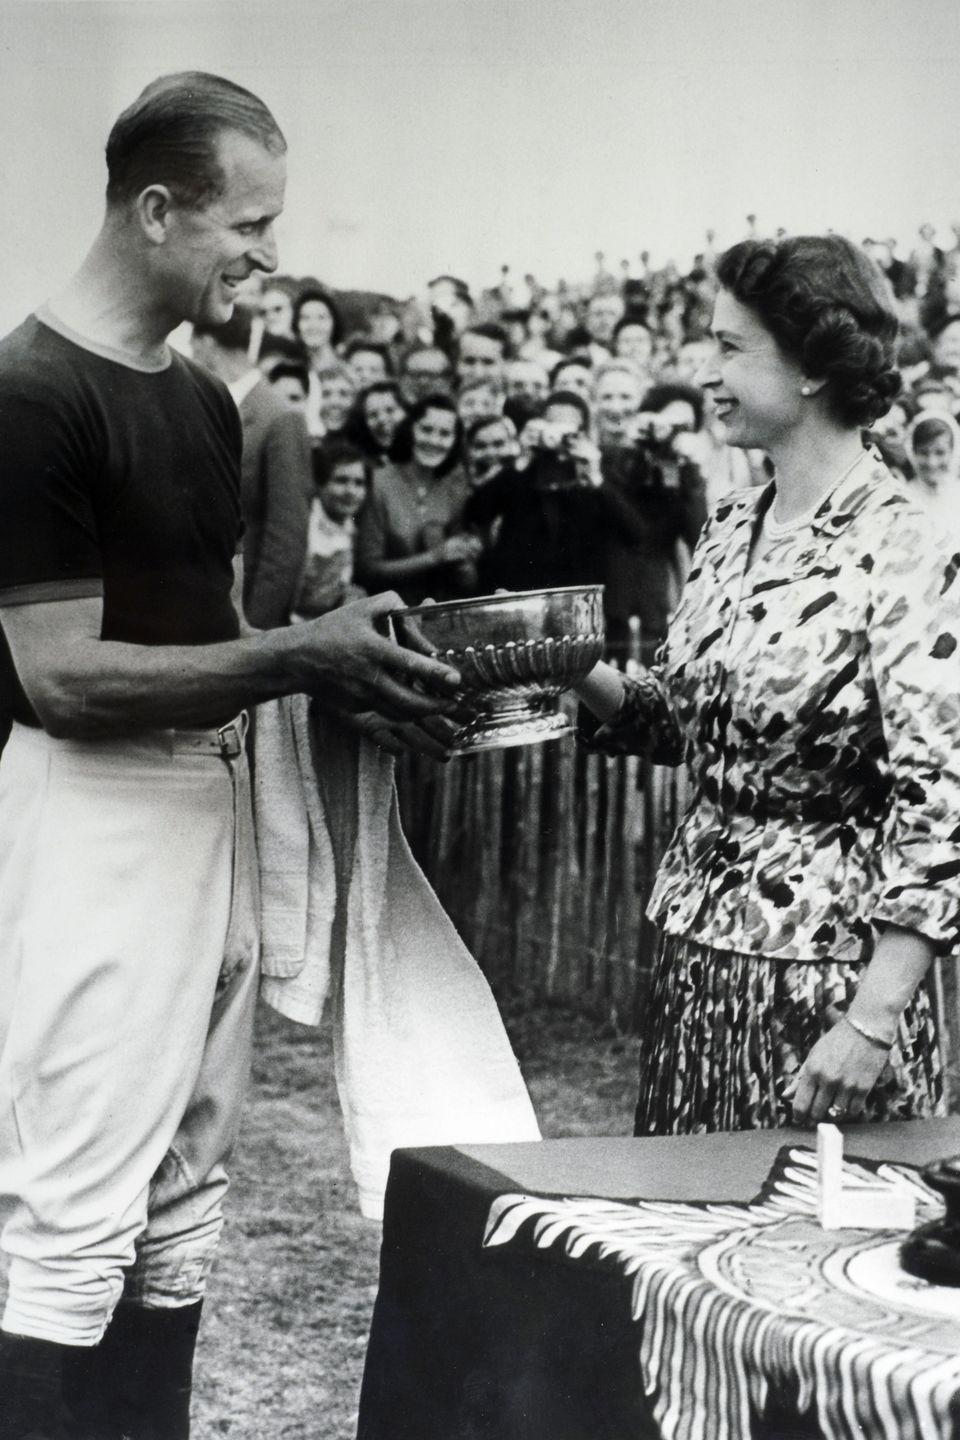 <p>Queen Elizabeth congratulates Prince Philip and presents him with a trophy following a polo match in the summer of 1957. </p>